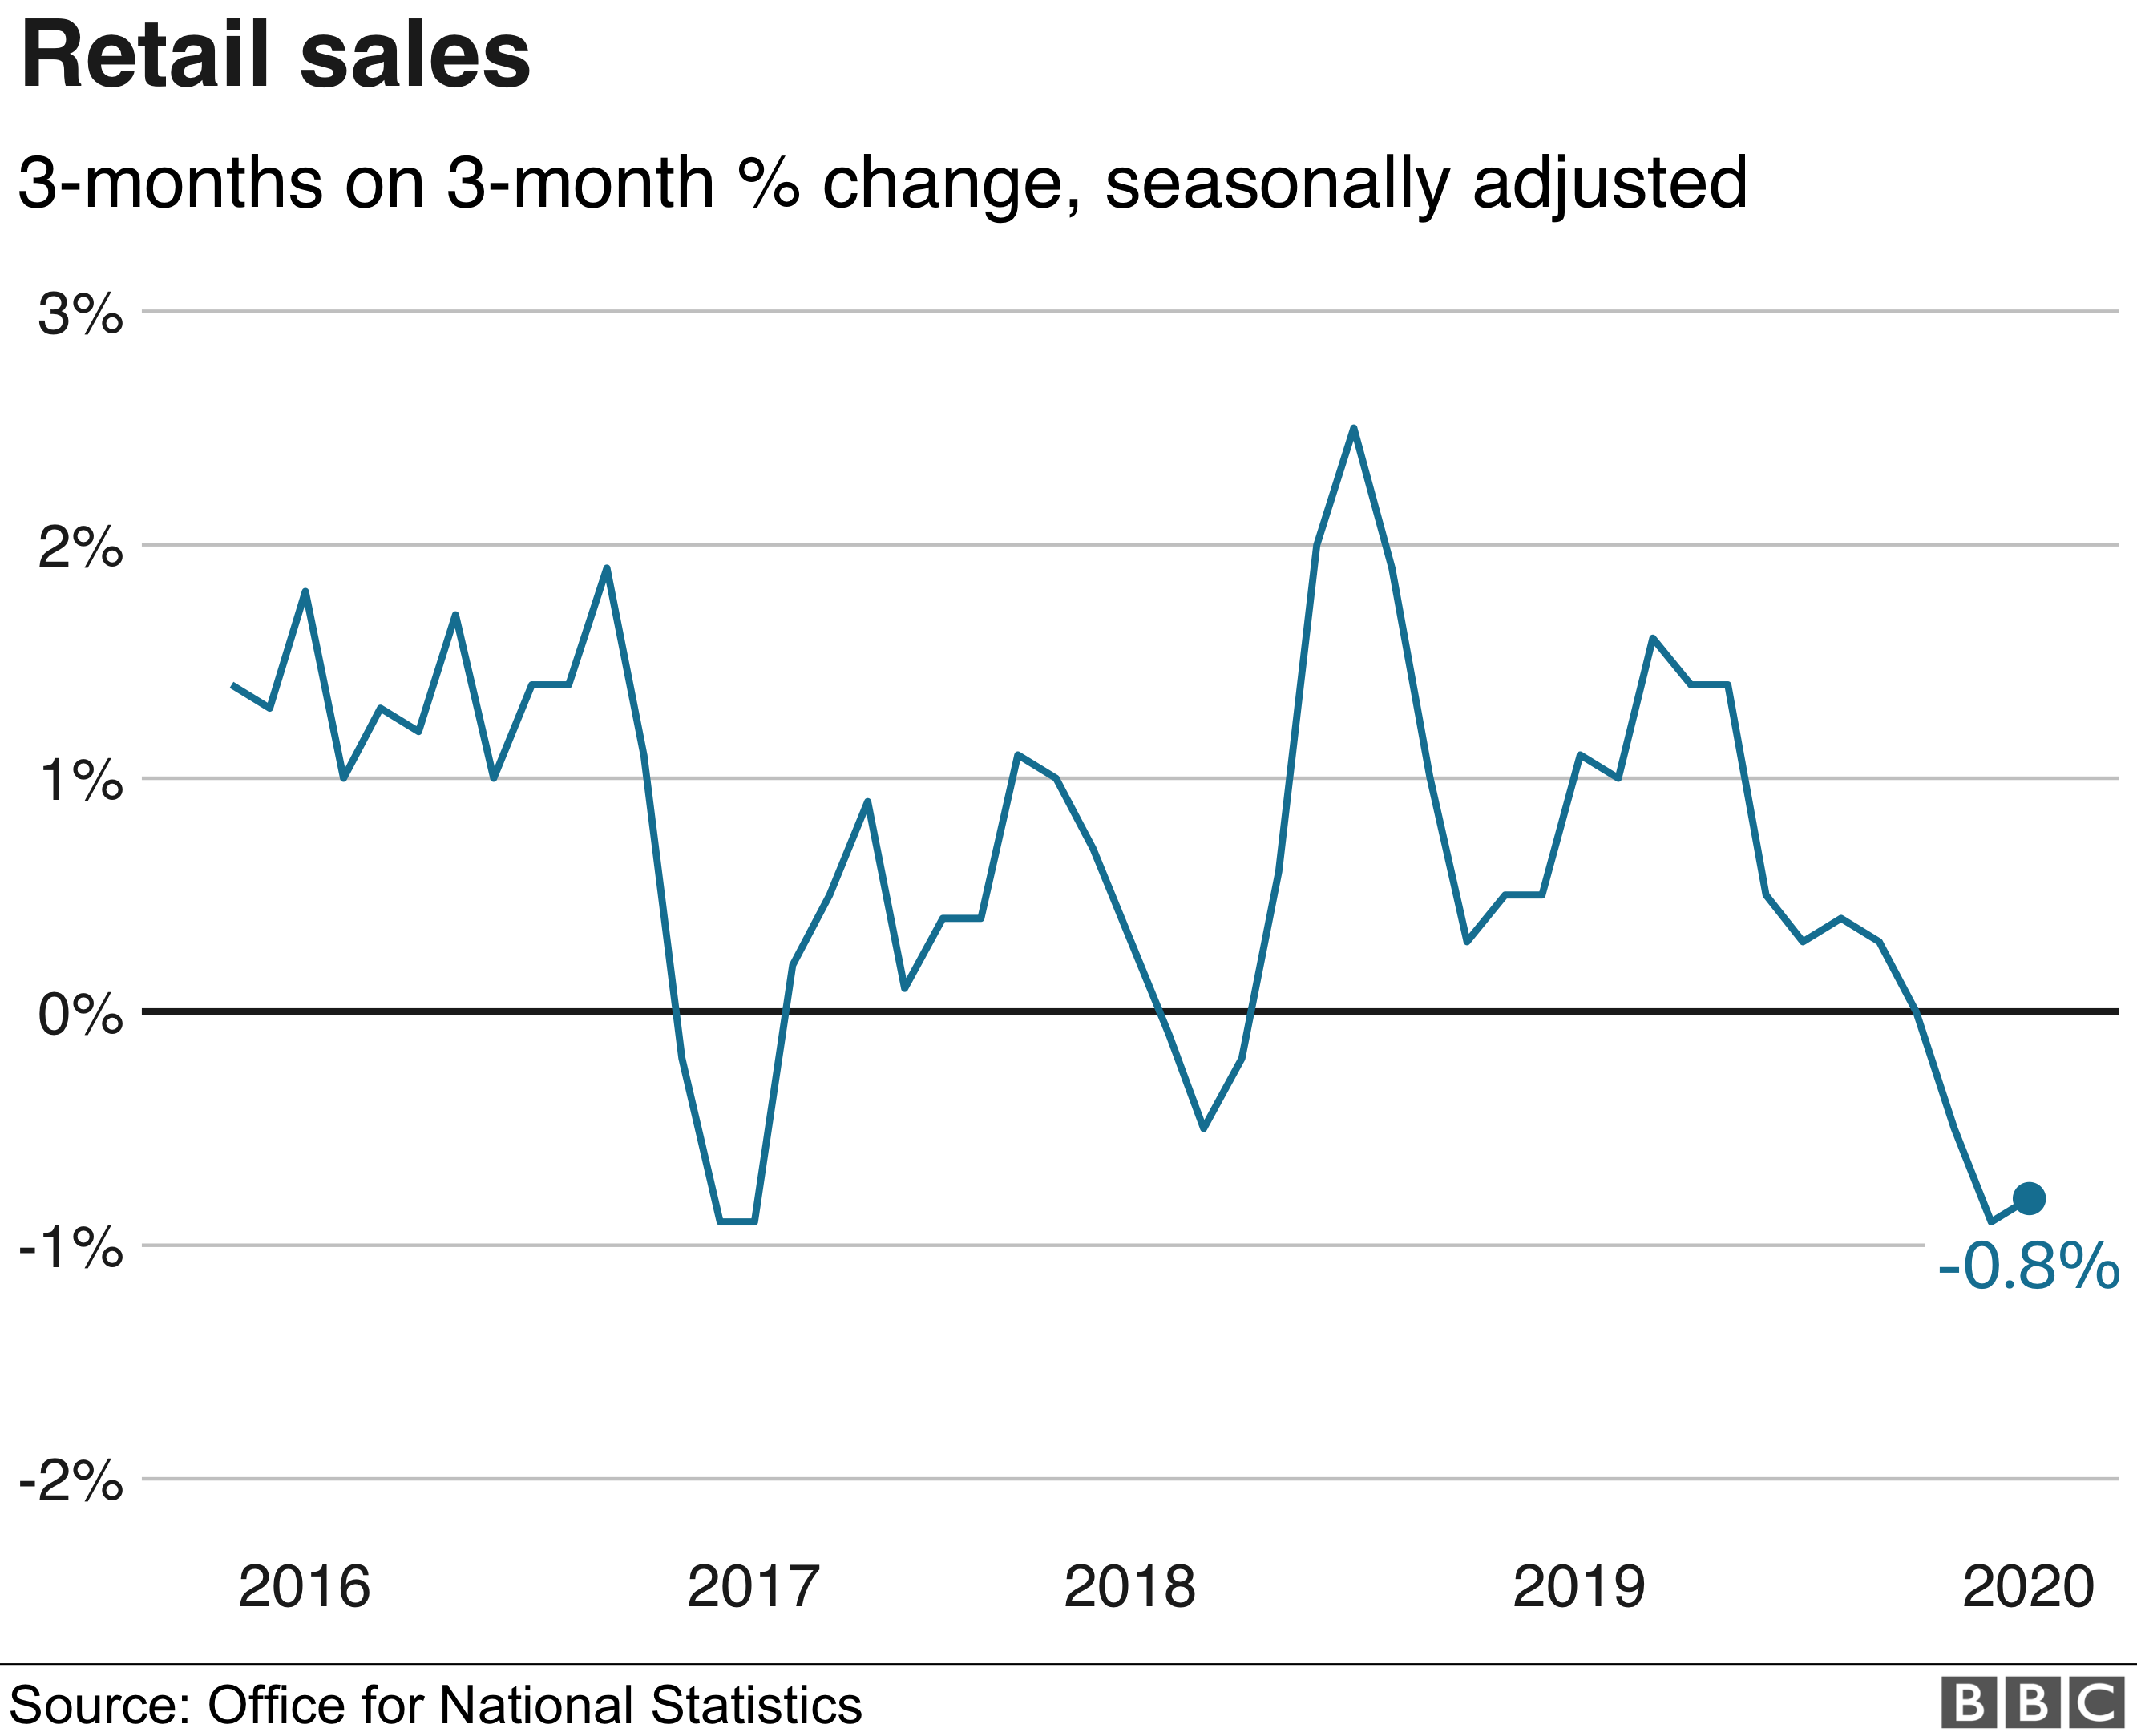 Chart showing quarterly figure for retail